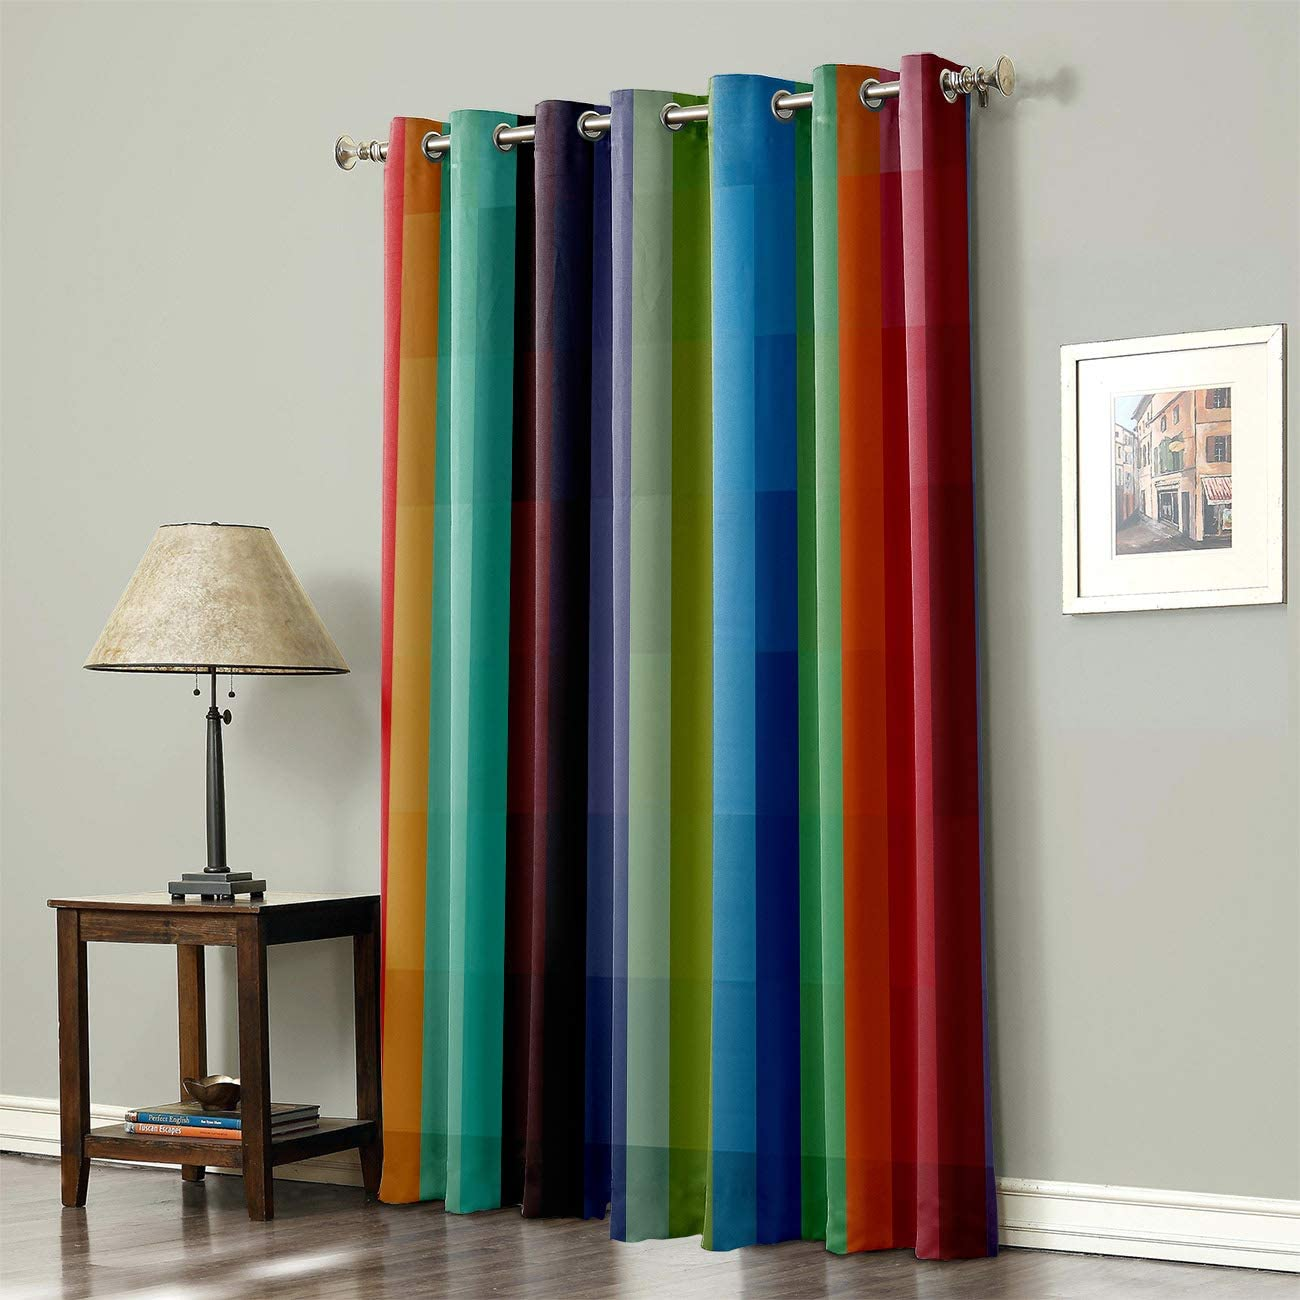 Grommet Top Curtains for お値打ち価格で Living Cu Room Treatment Bedroom Window 人気の定番